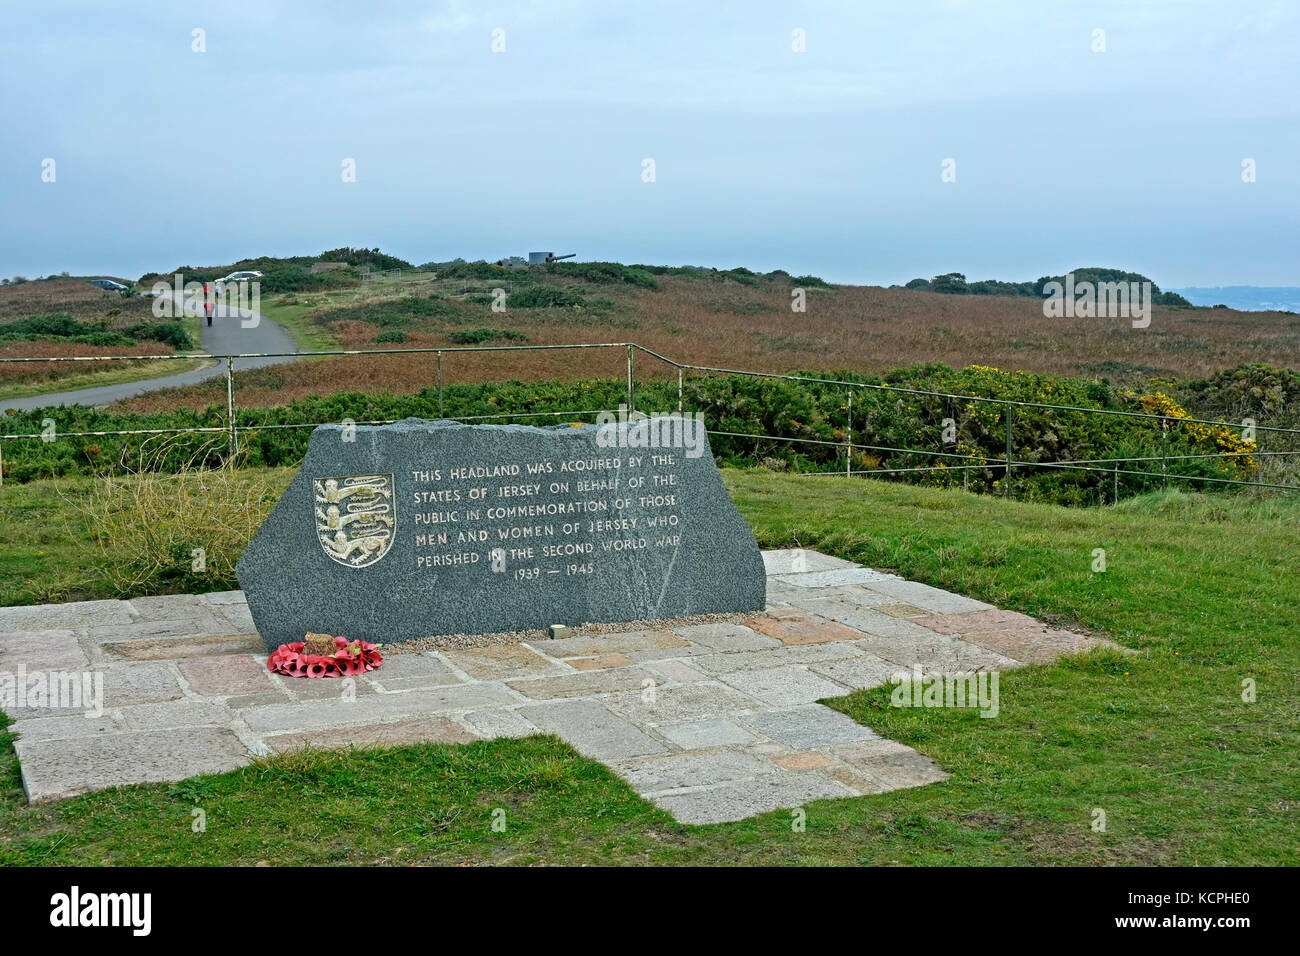 Jersey - Channel Isles - memorial stone - for those lost in WW11 - States of Jersey - view to the sea across headland Stock Photo